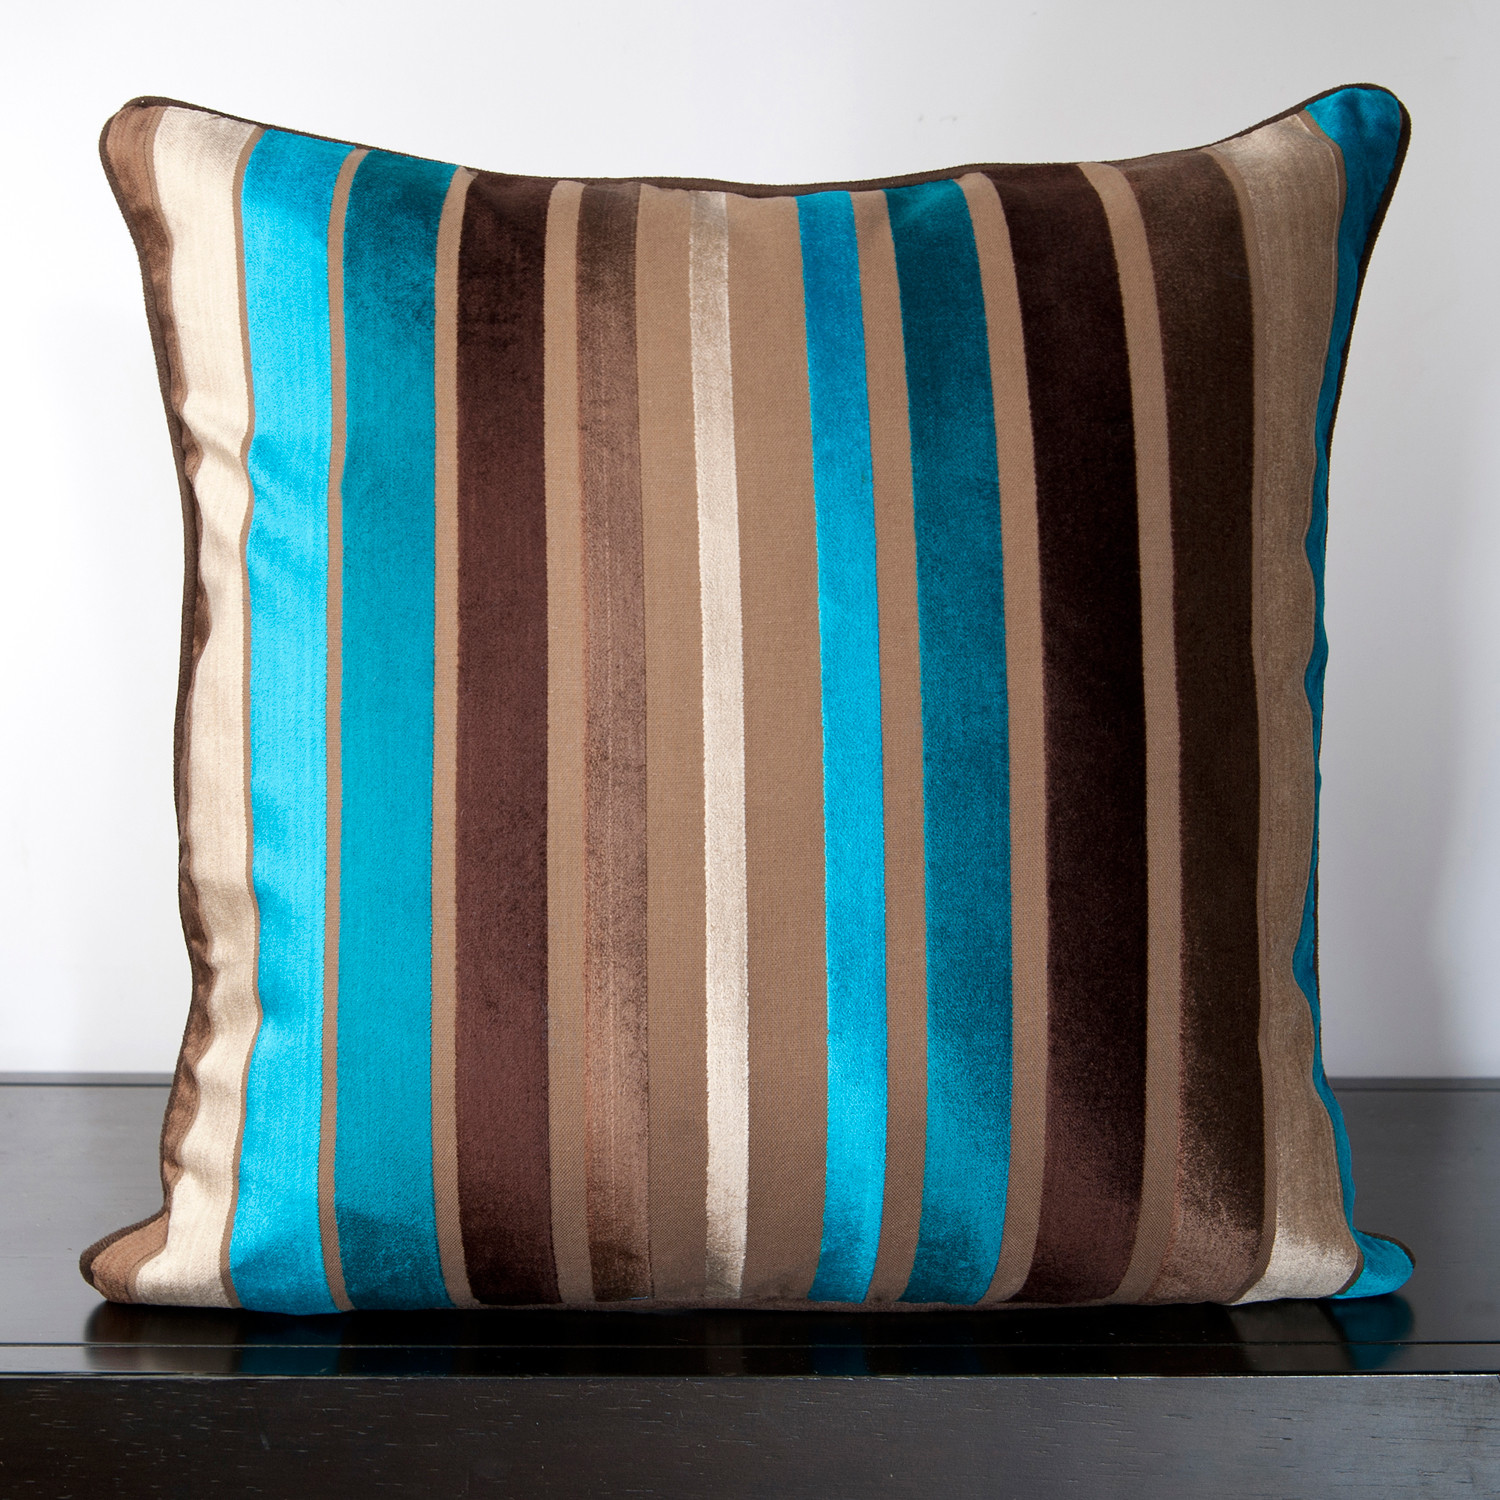 Pillow Kit Driftwood Brown Teal Blue Ocean Espresso 18